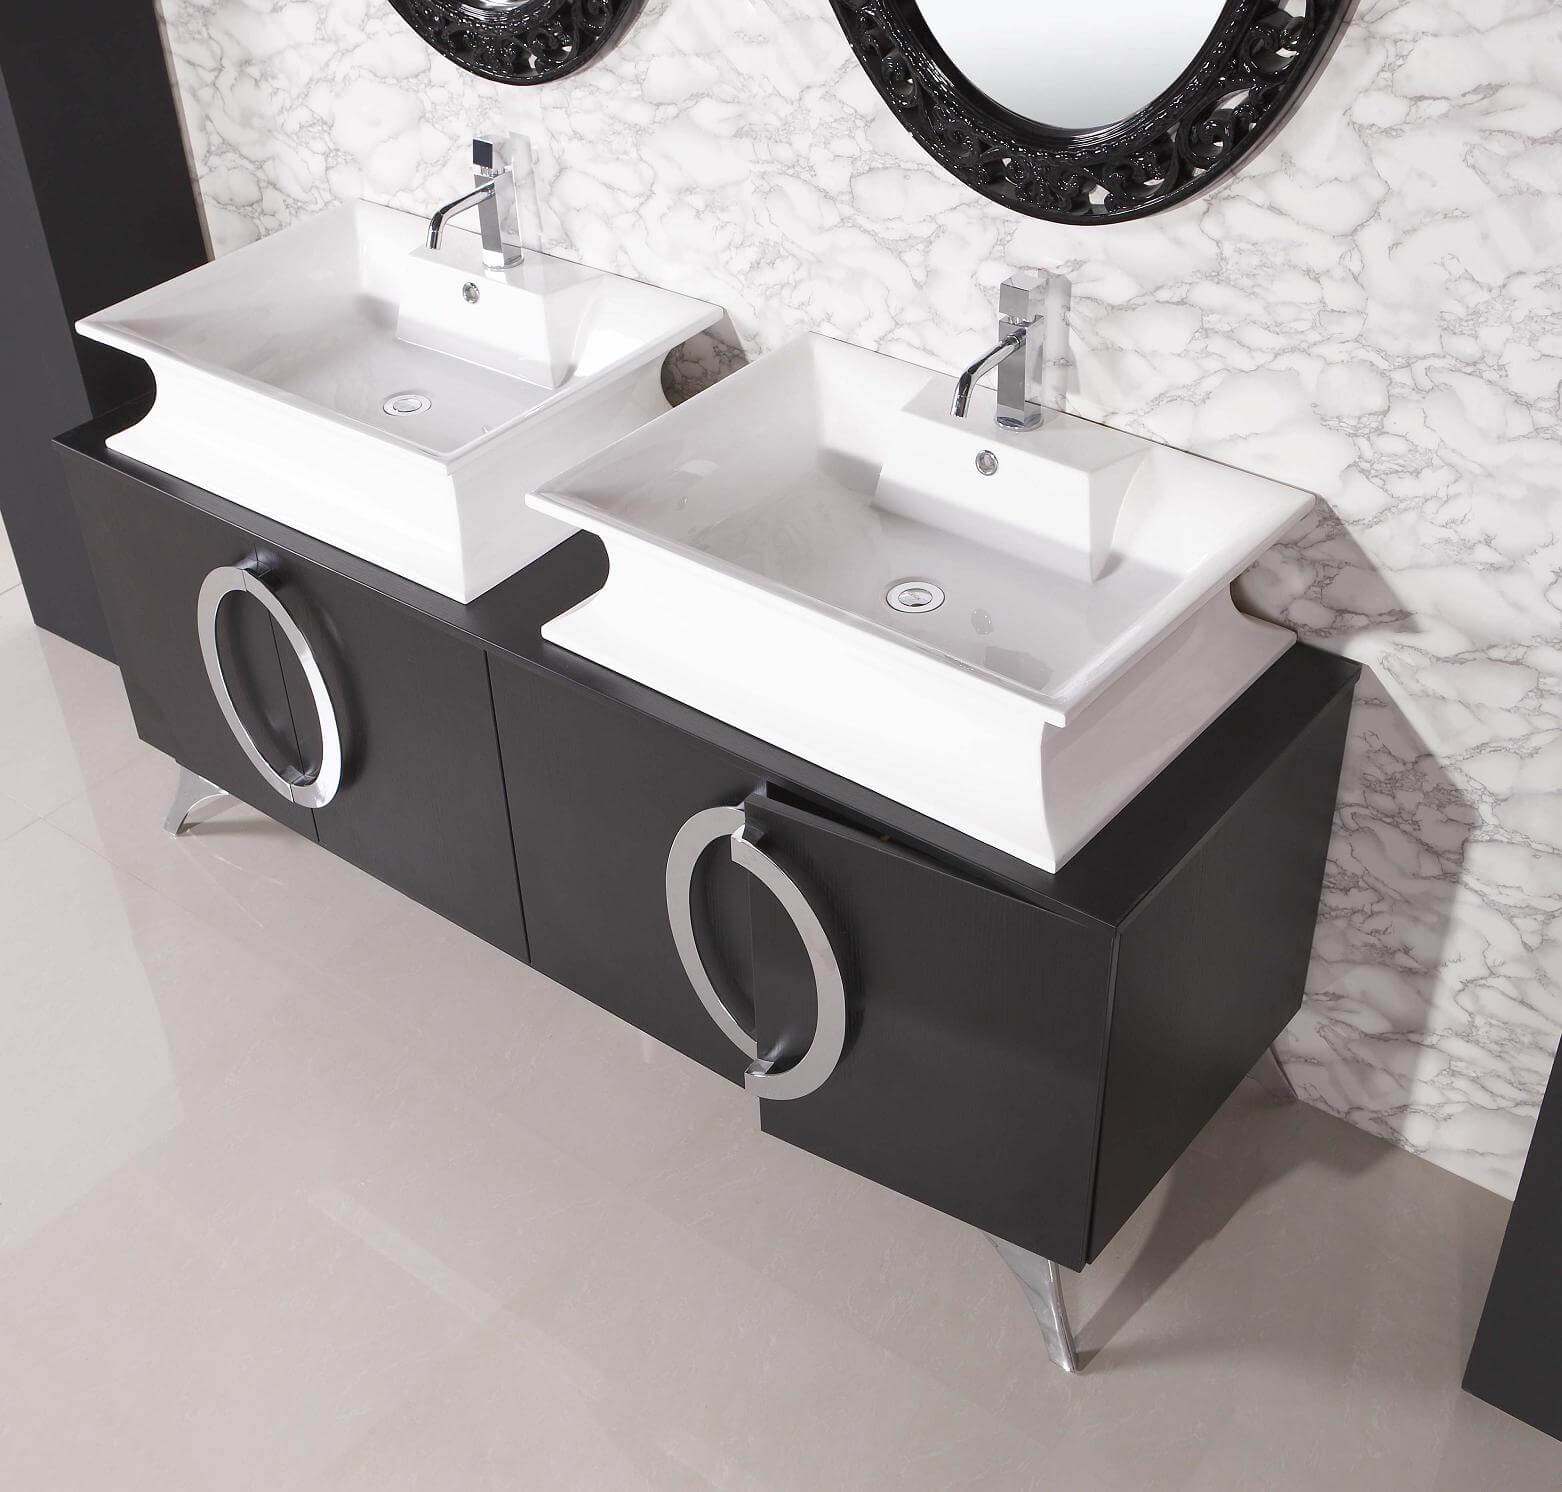 Bathroom sink design 5